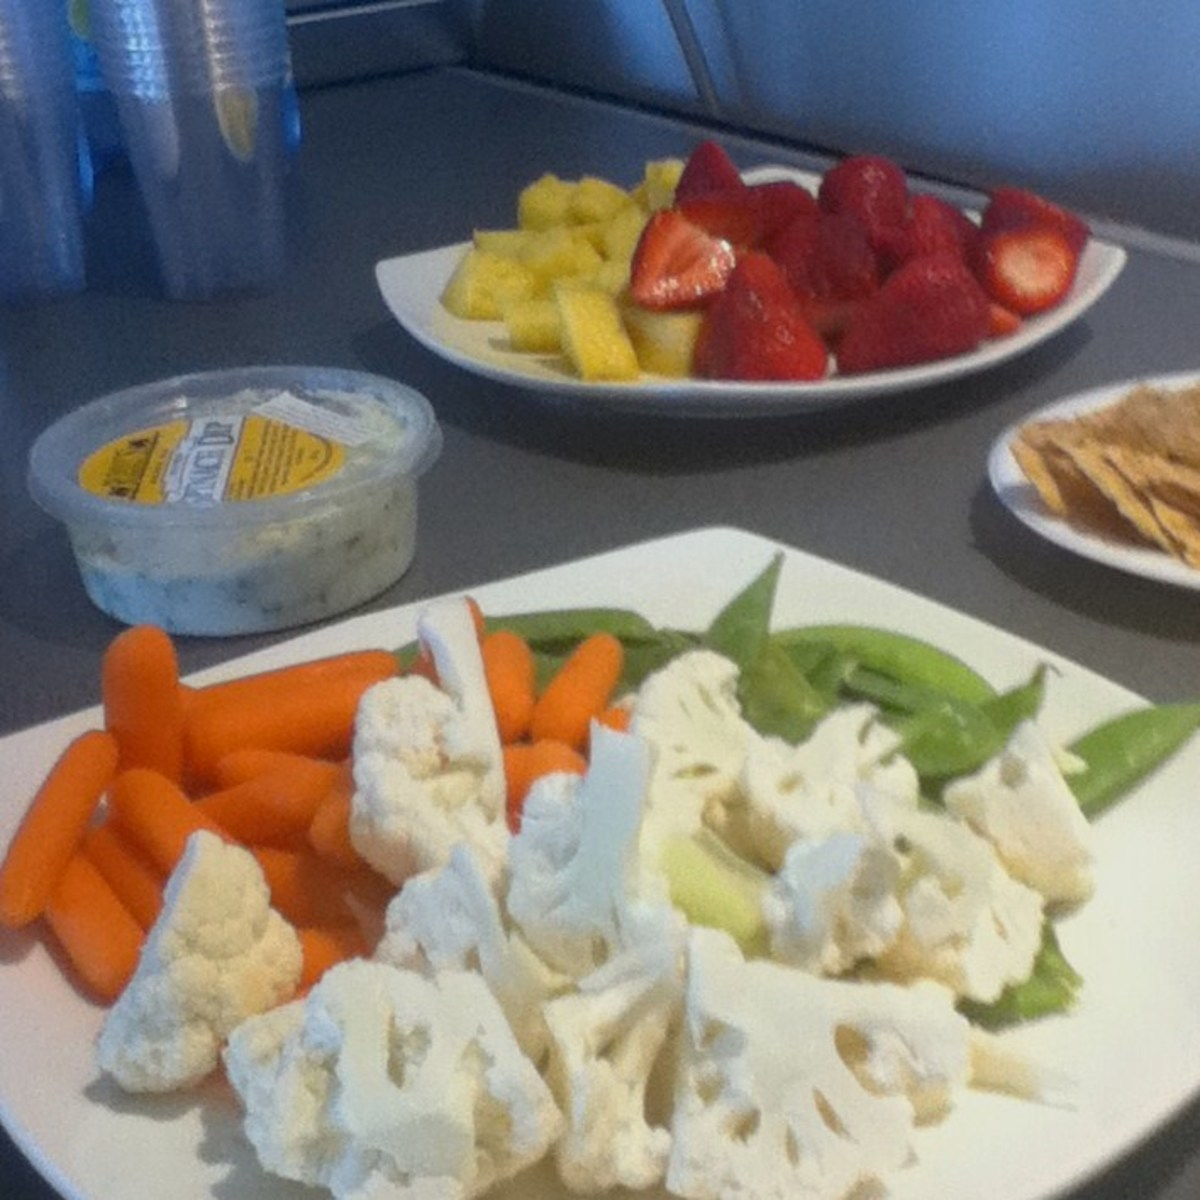 Fresh fruit and veggies are always popular at potluck lunches.